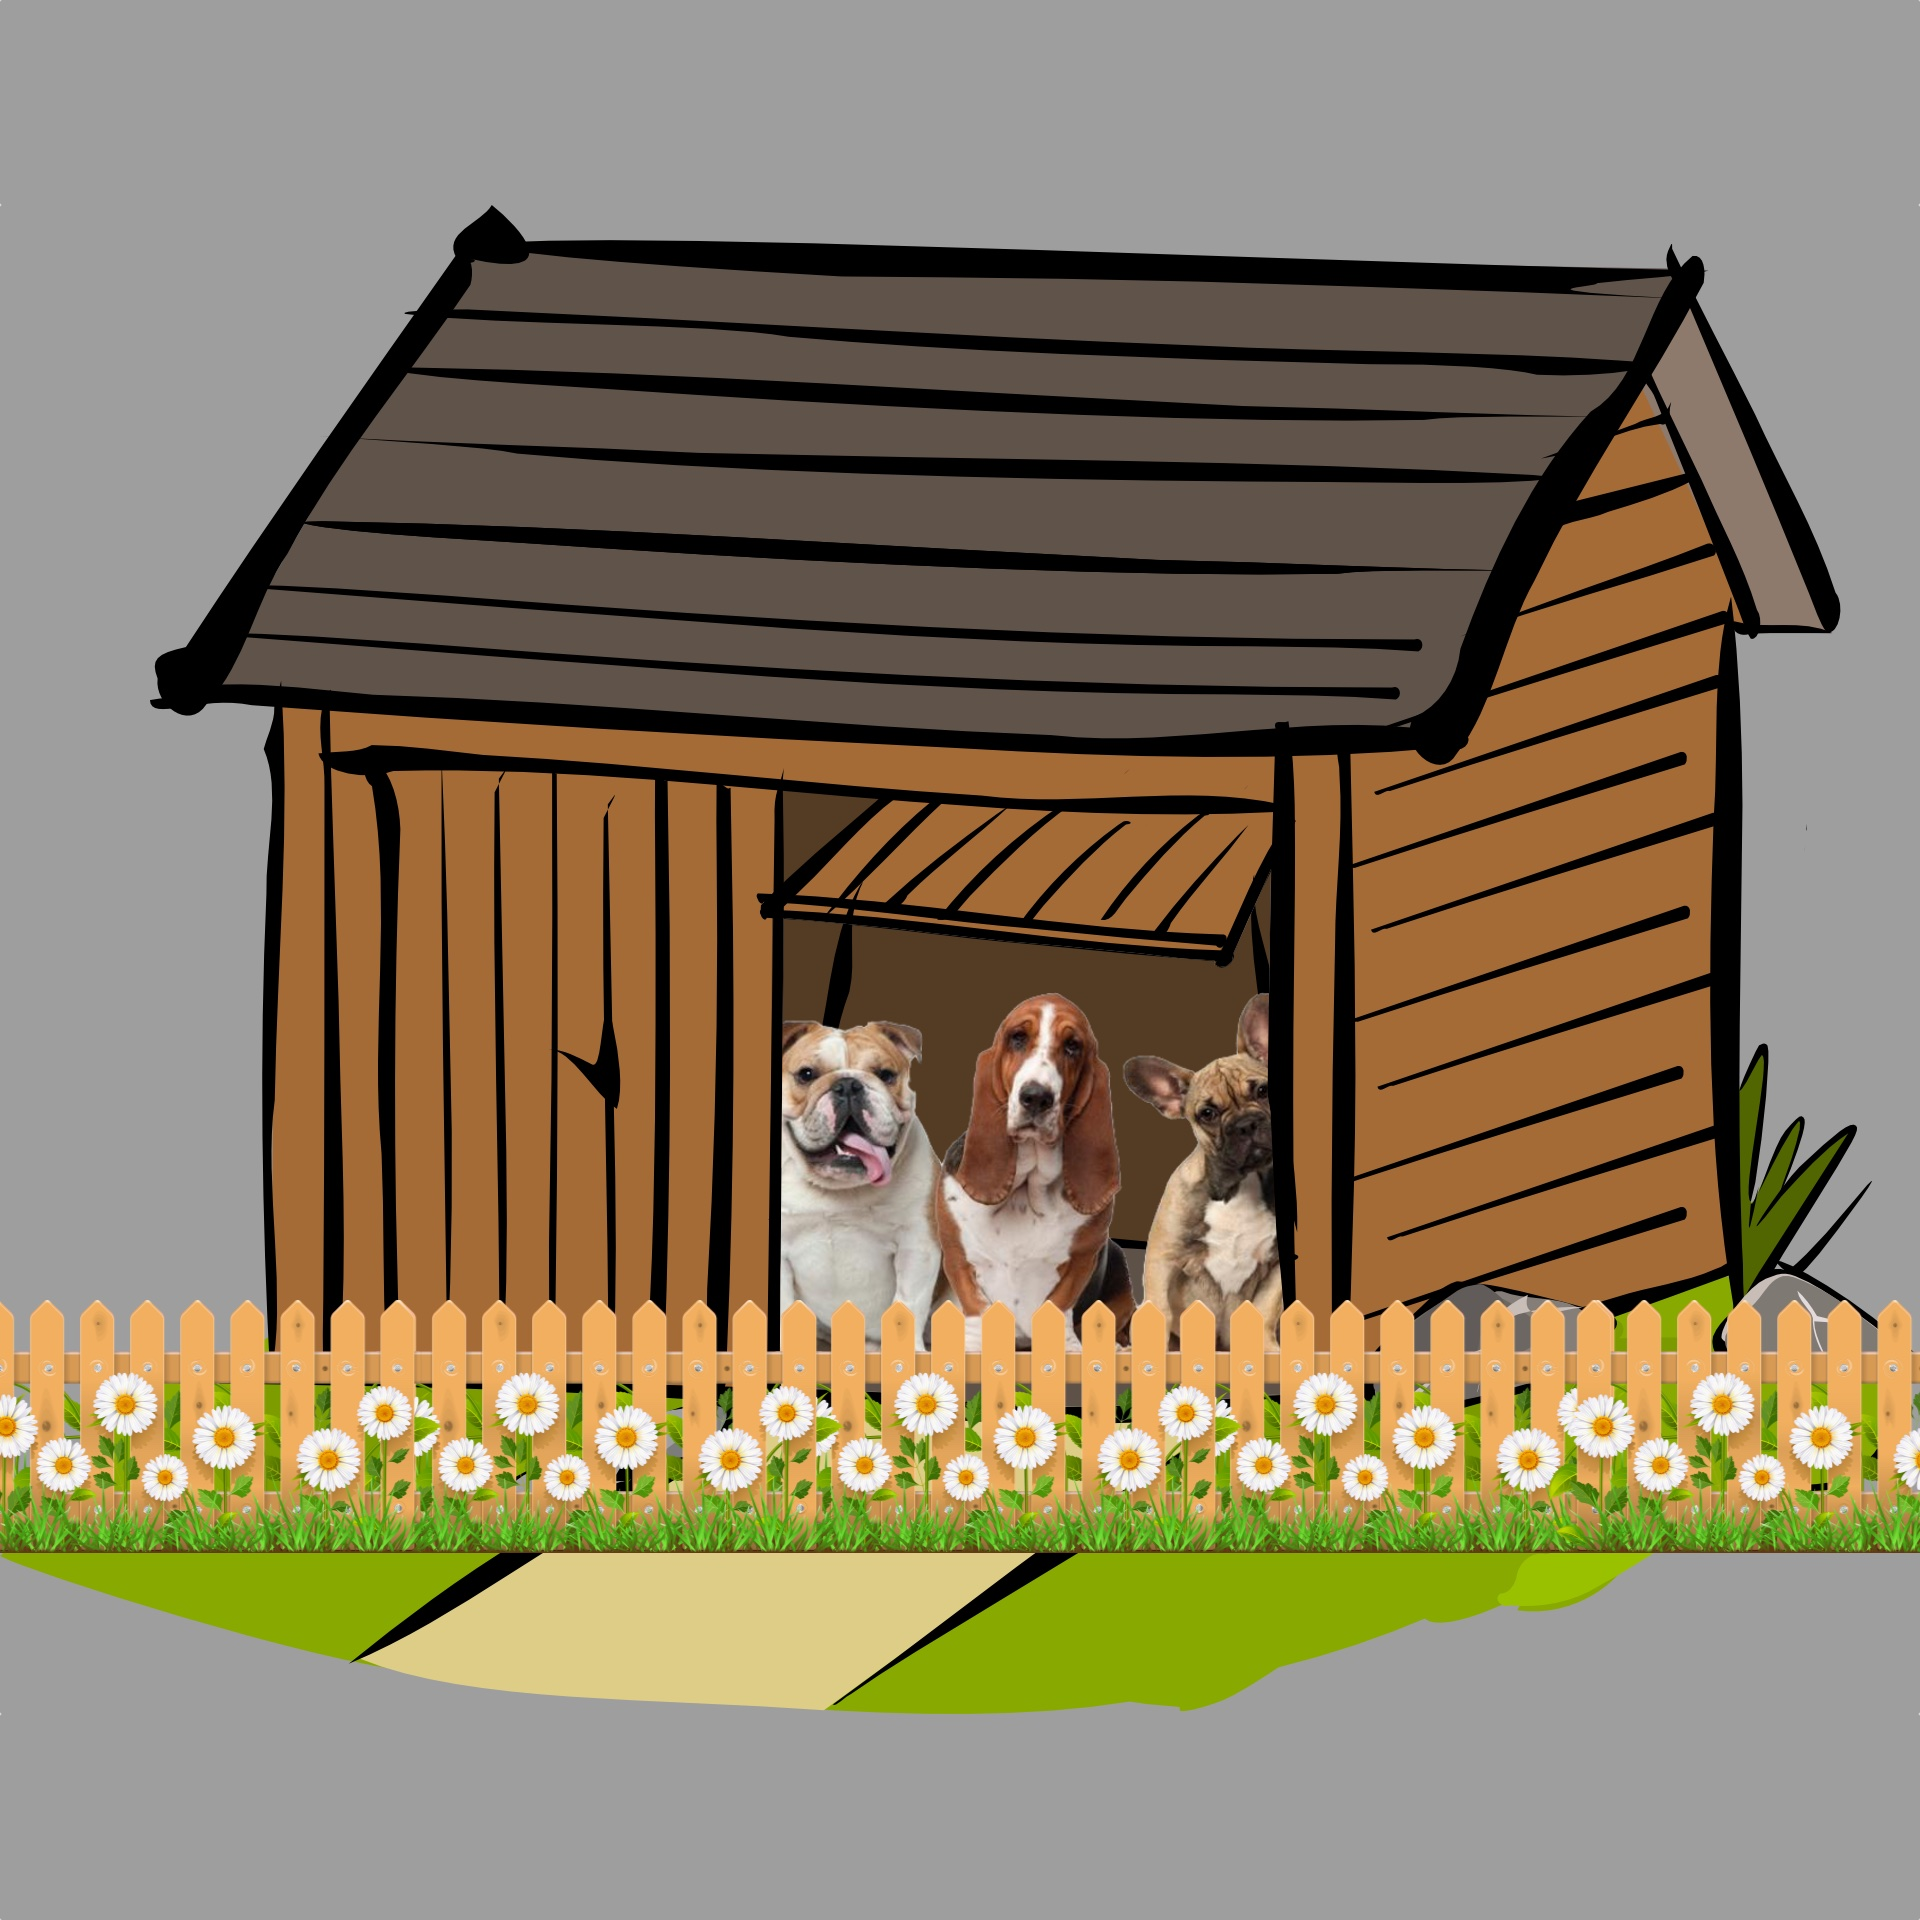 Dogs in Shed with fence.jpg